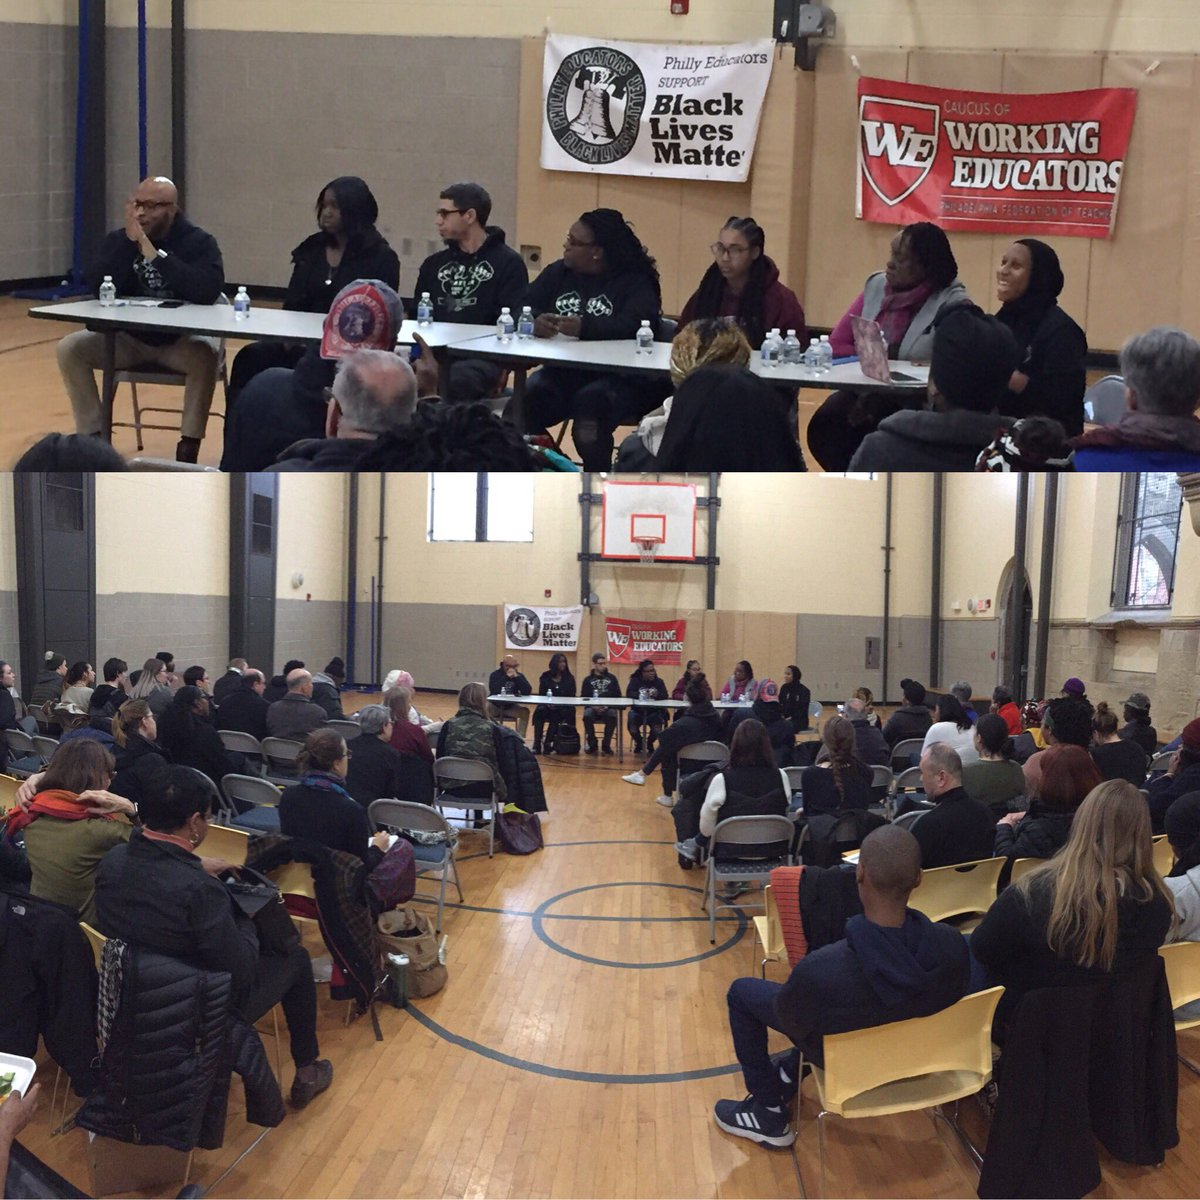 "Panelists at #BlackLivesMatterAtSchool discussion ""Gun Violence & Trauma in Our Schools"" share stories, ask tough questions & invite attendees to identify strategies to help our communities. #BlackLivesMatter #BLMPhlEd @CaucusofWE @BLMAtSchool @MelanatedEC @PHLschoolboard"